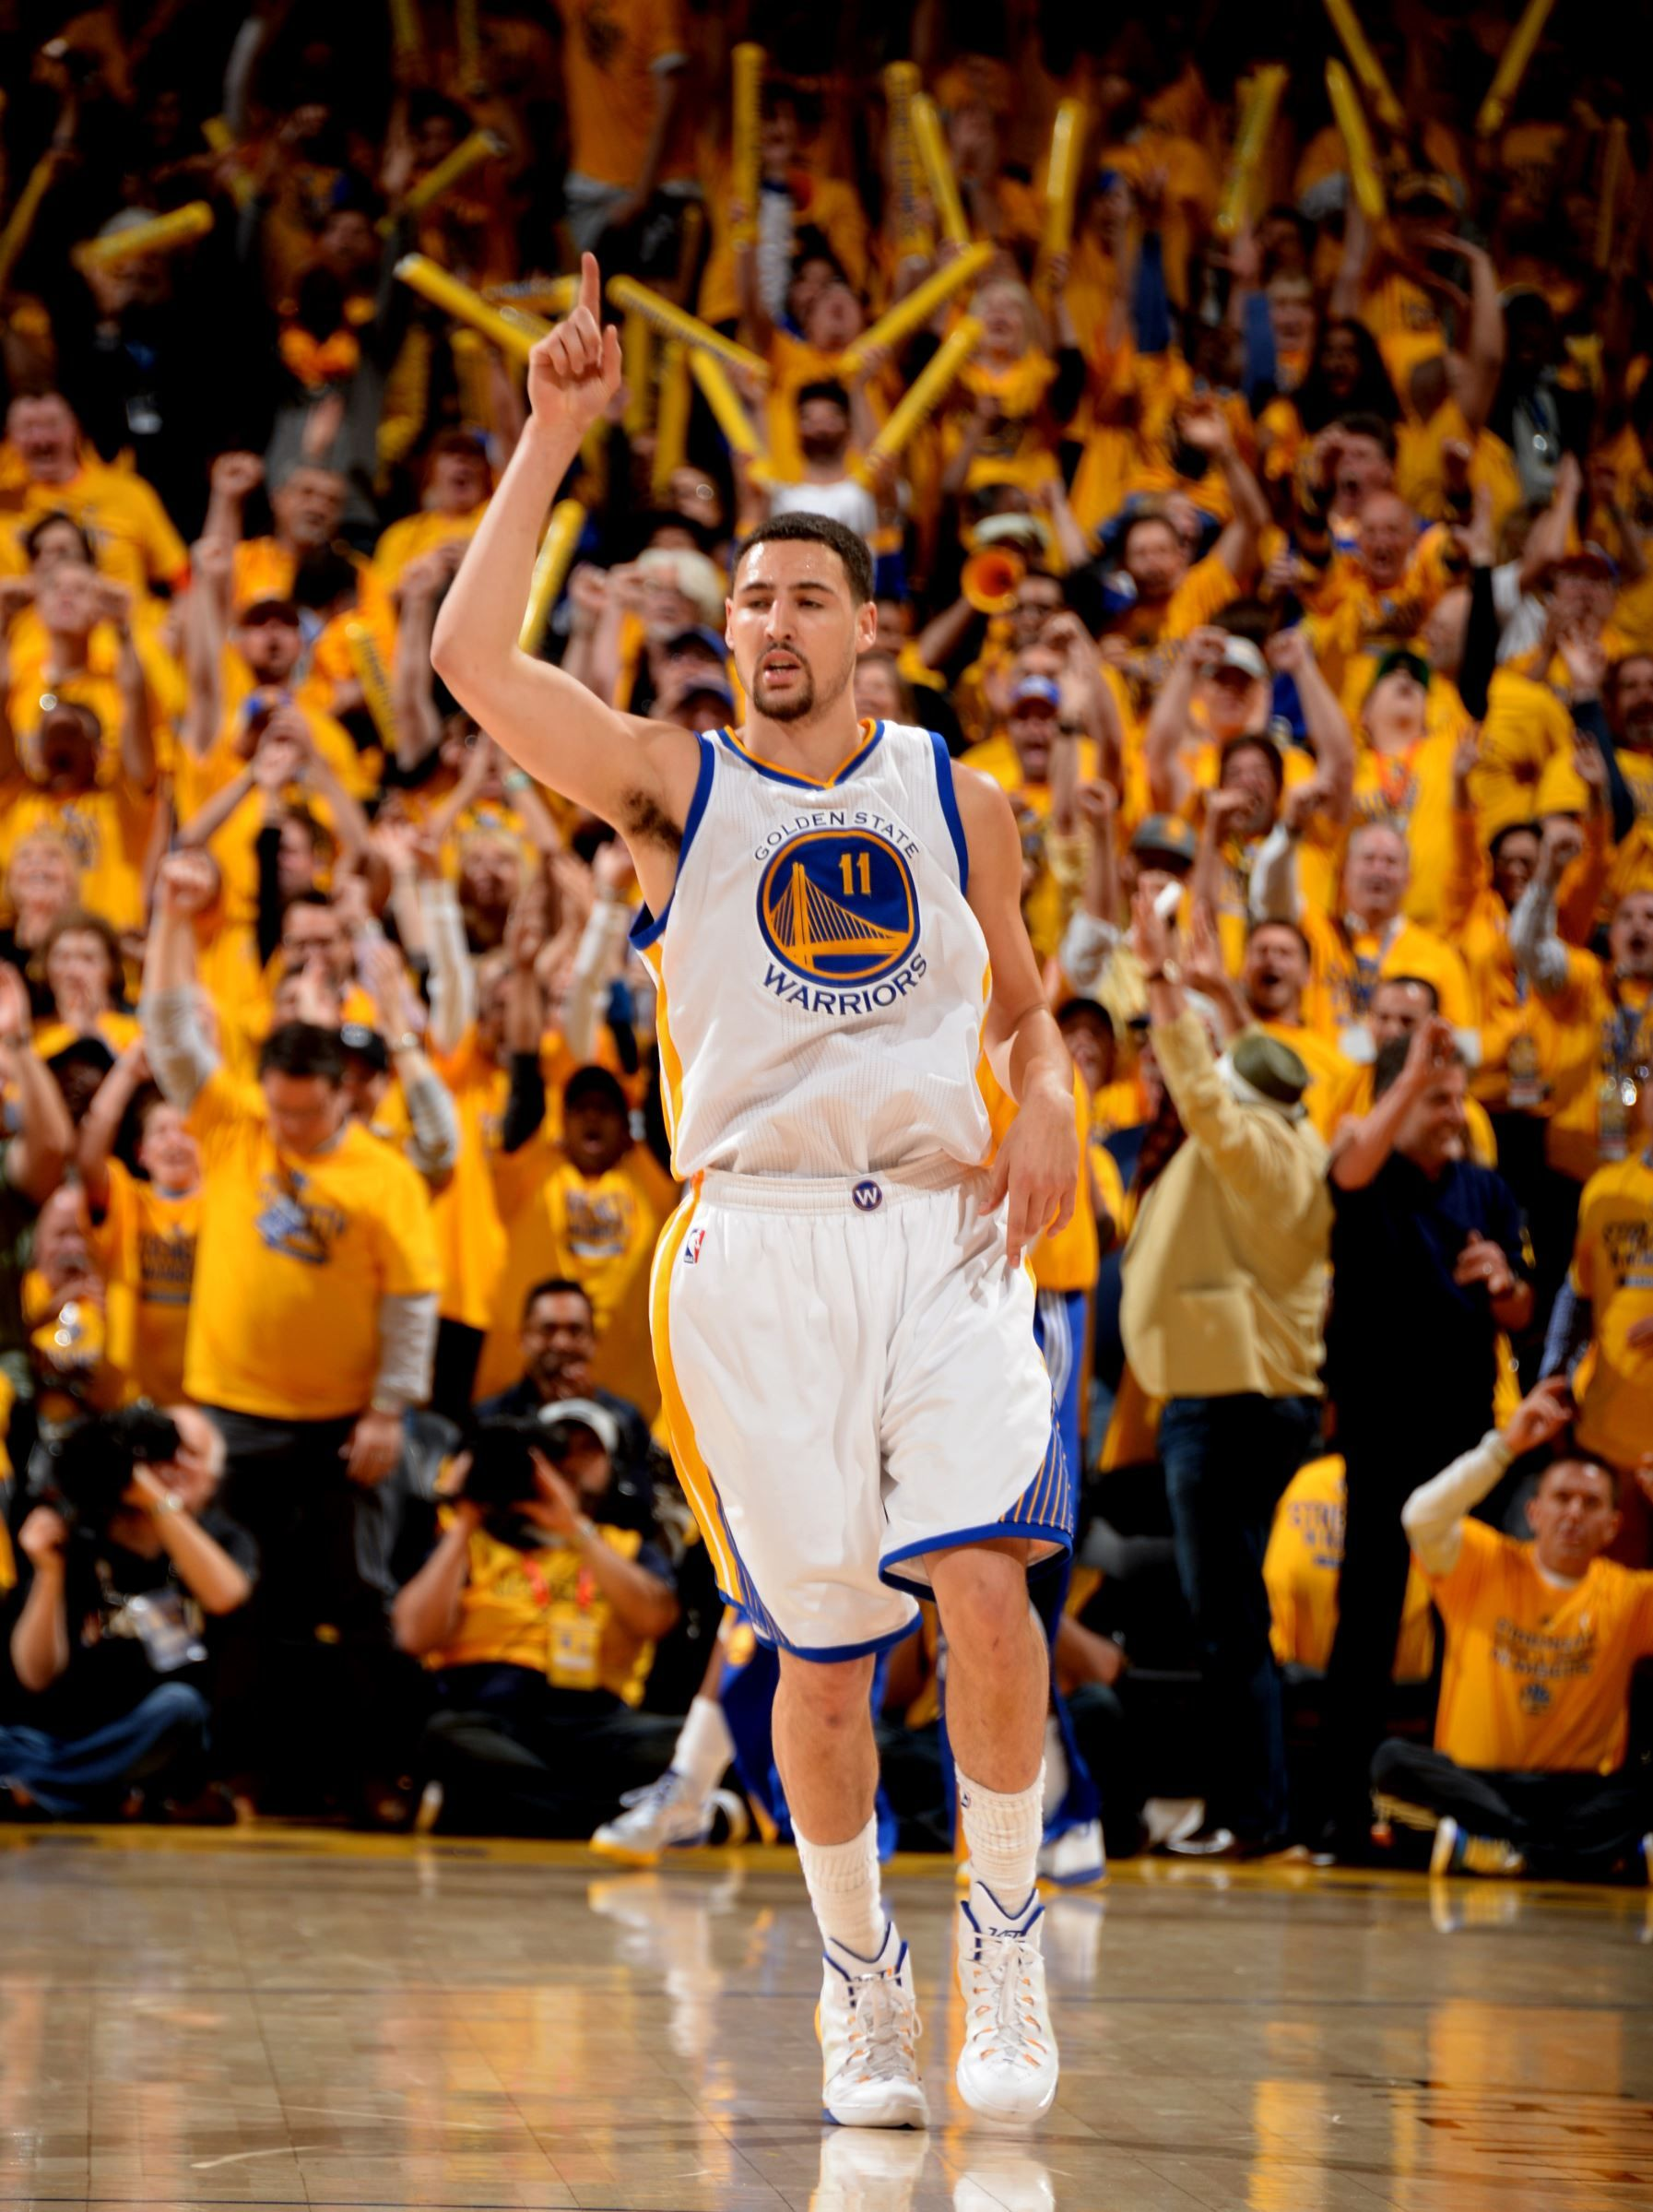 c39bbfadb Here s a weird thing people have noticed  Golden State Warriors guard Klay  Thompson has a familiar face … but who does he look like